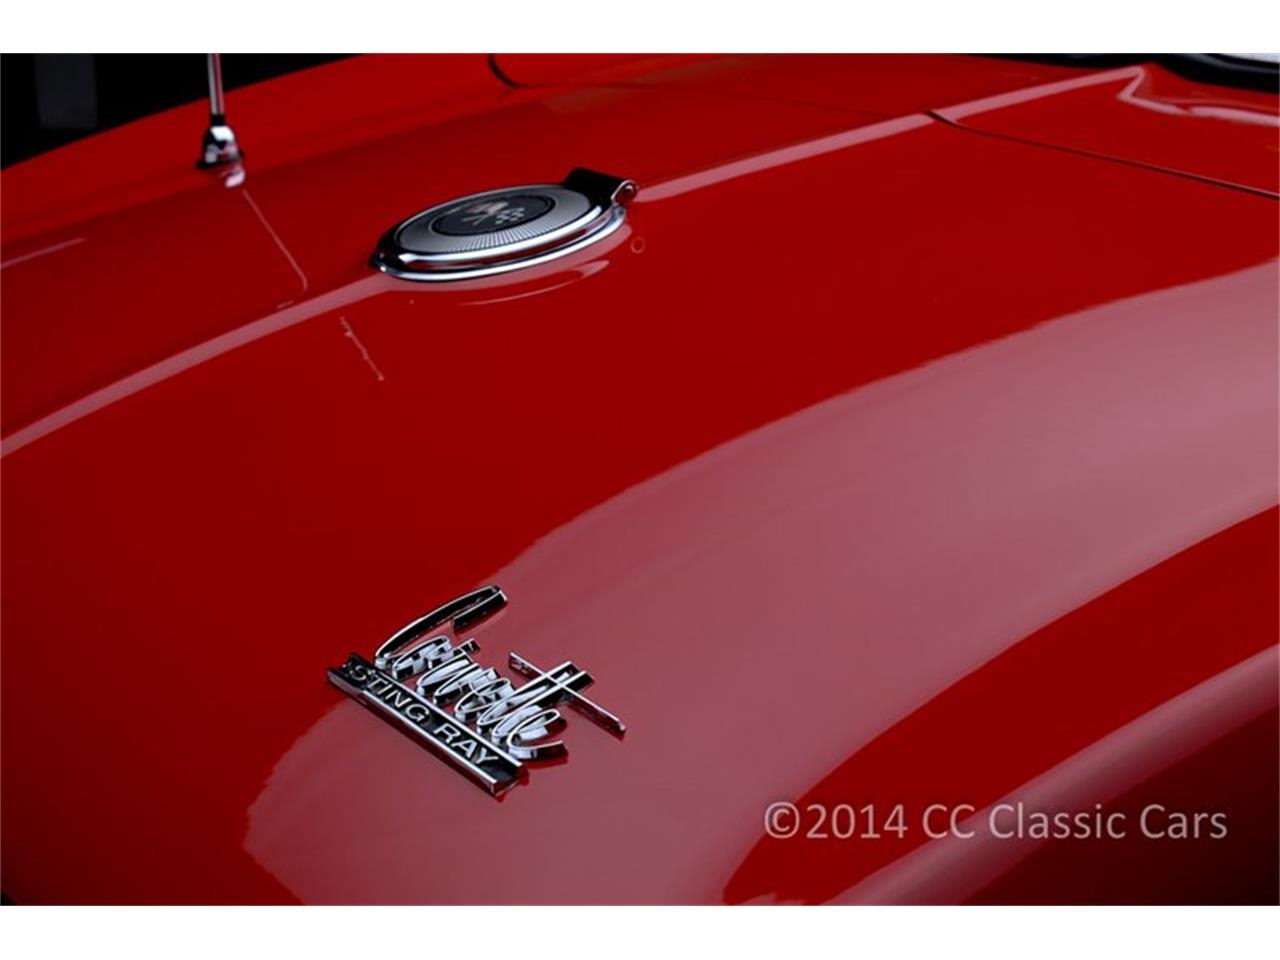 Large Picture of '66 Corvette located in Pennsylvania Auction Vehicle Offered by CC Classic Cars - HZ0A